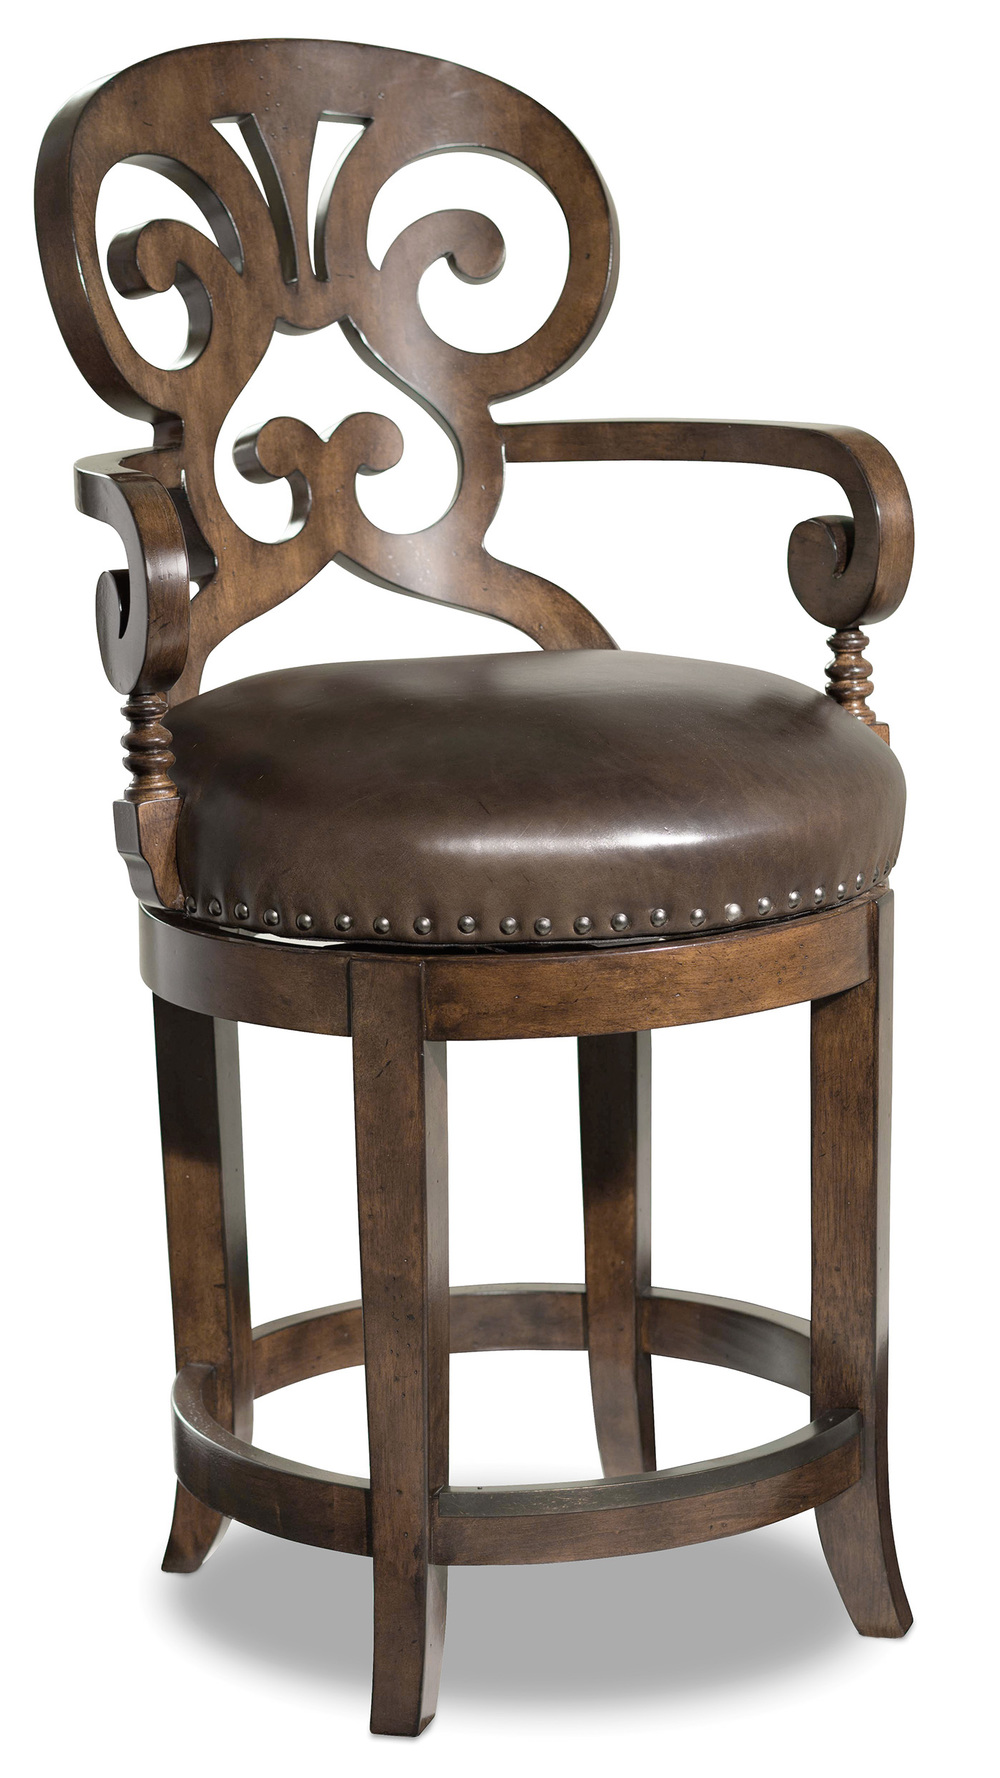 HOOKER FURNITURE CO - Jameson Cottage Leather Counter Stool